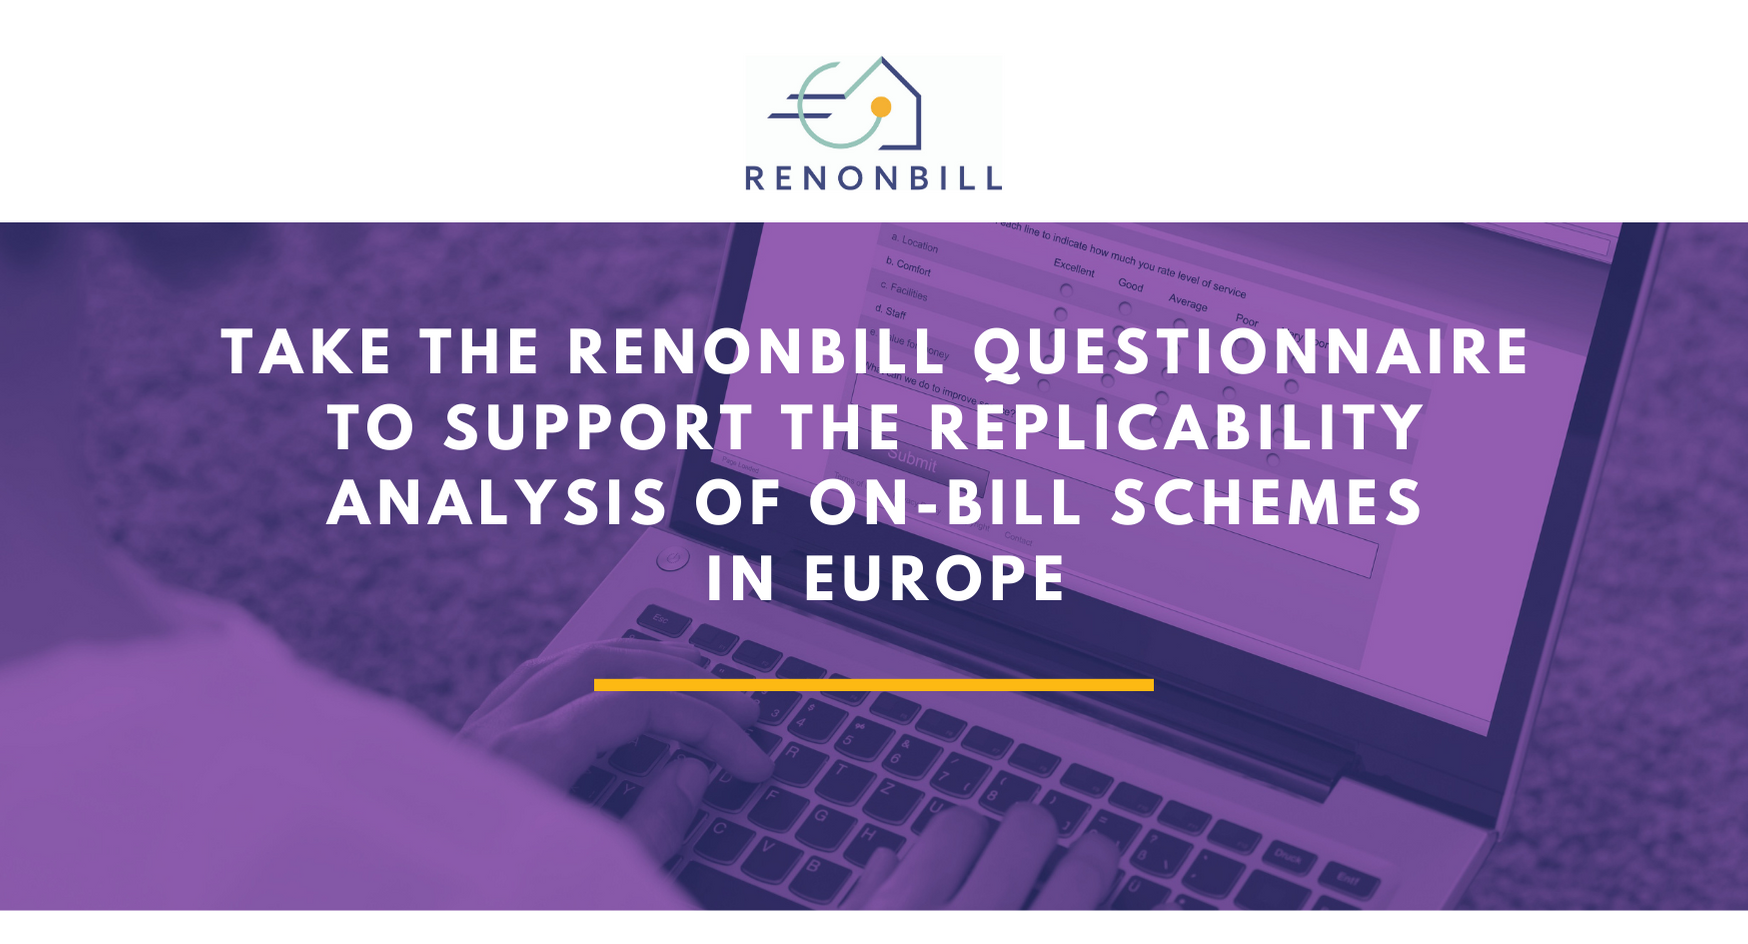 There is still time to fill in the questionnaire to help RenOnBill support the replicability of on-bill schemes in Europe!